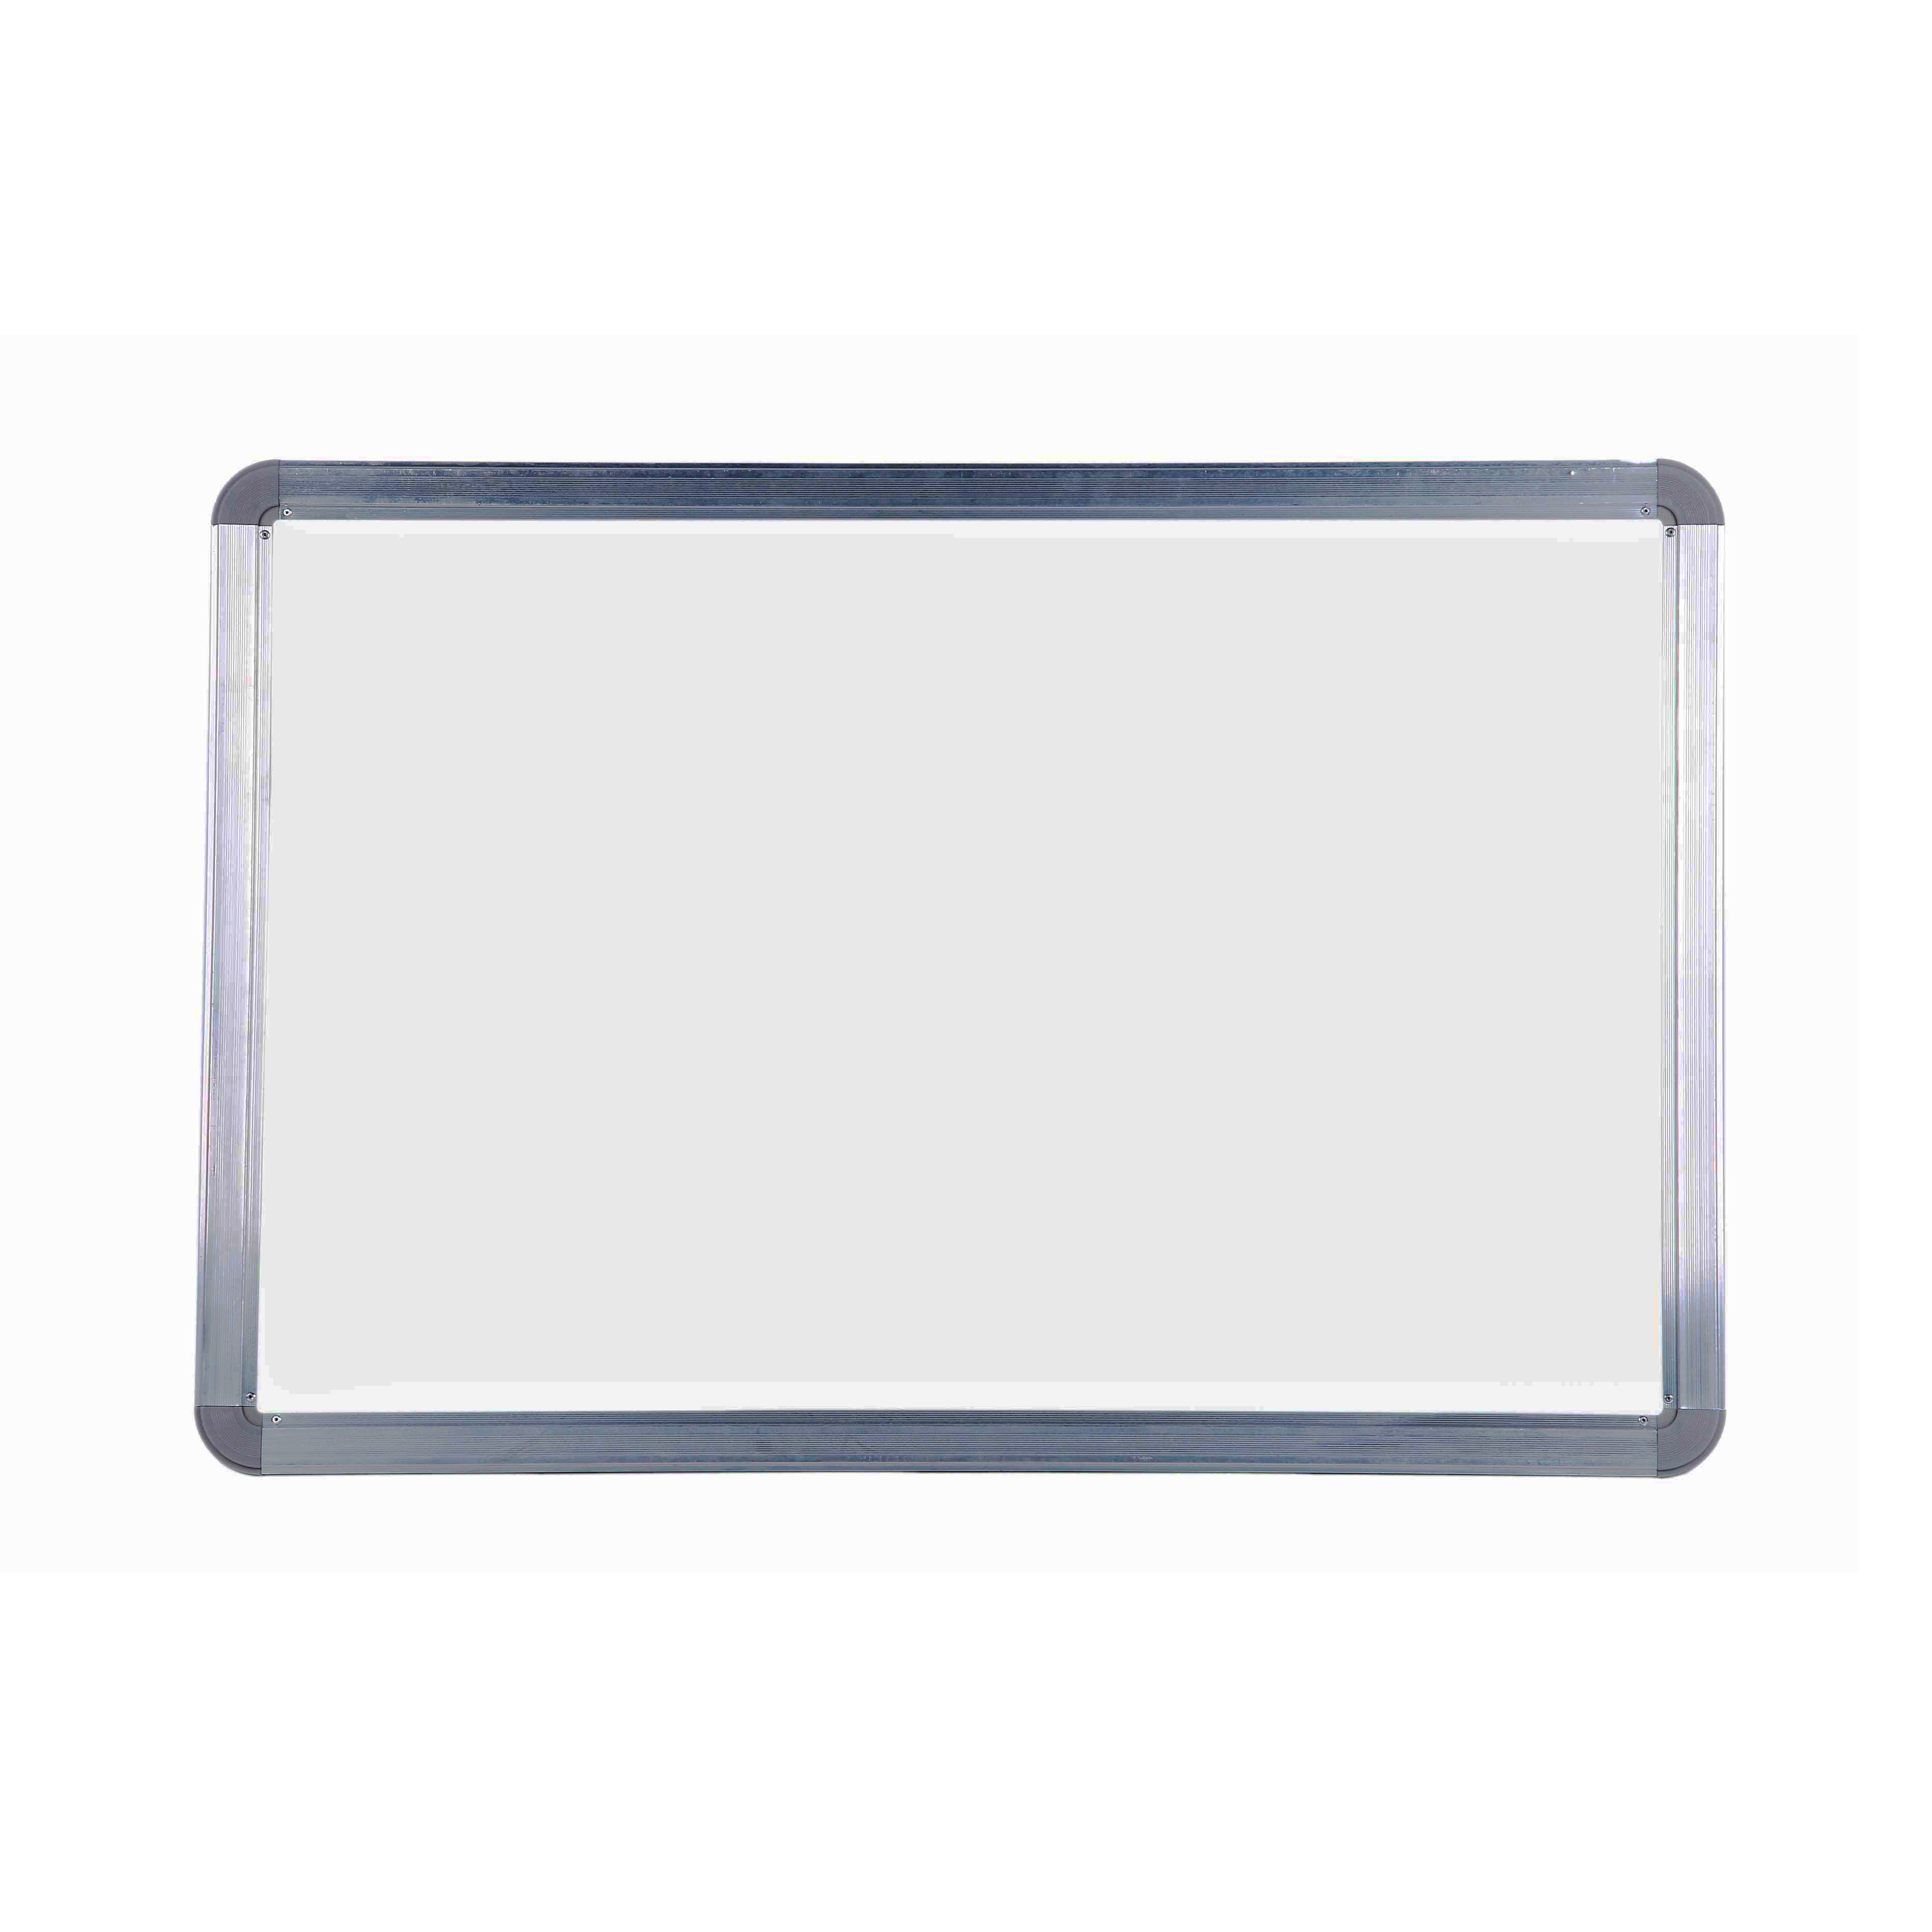 aluminium frame magnetic whiteboard joshen stationery. Black Bedroom Furniture Sets. Home Design Ideas